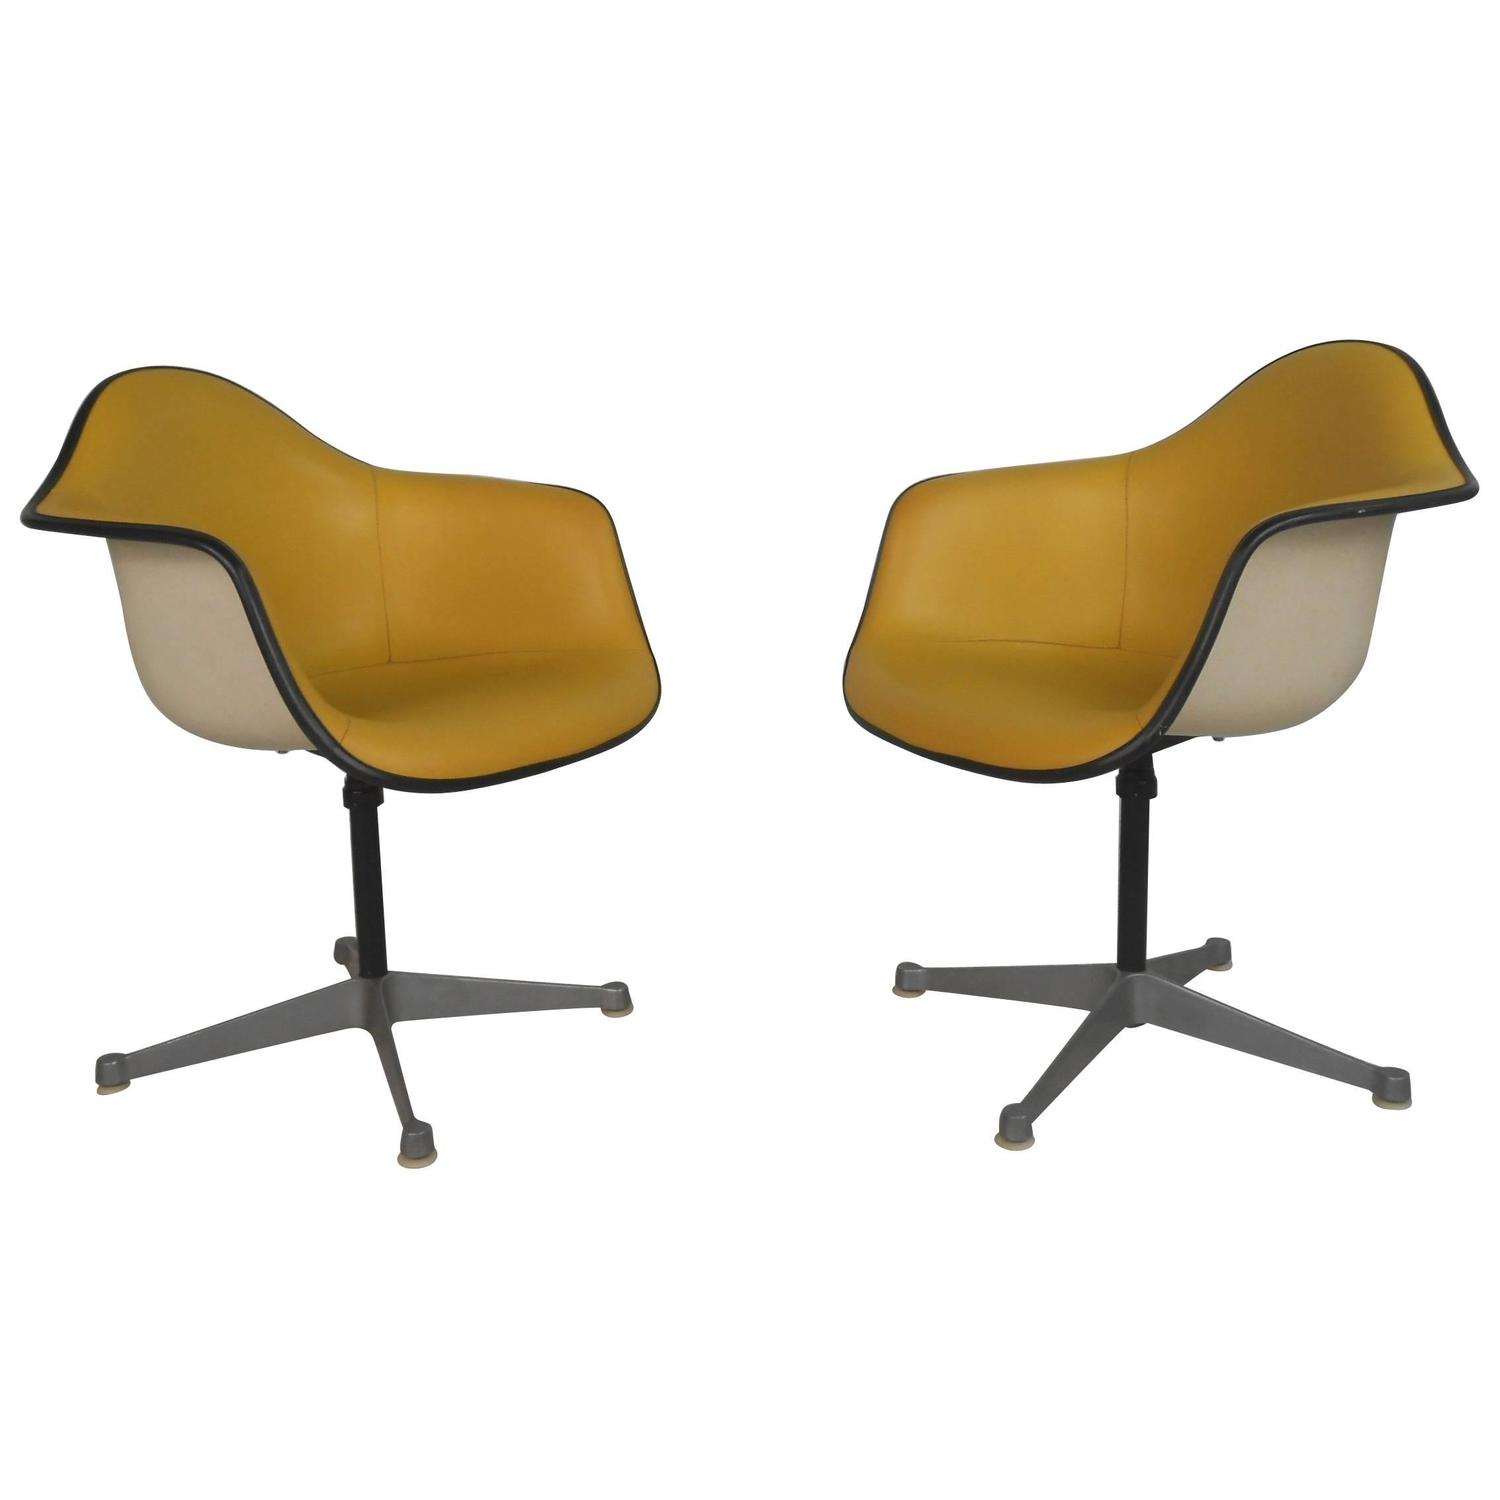 Charles Eames For Herman Miller Orange EC 118 Arm Shell Drafting Chair For  Sale At 1stdibs